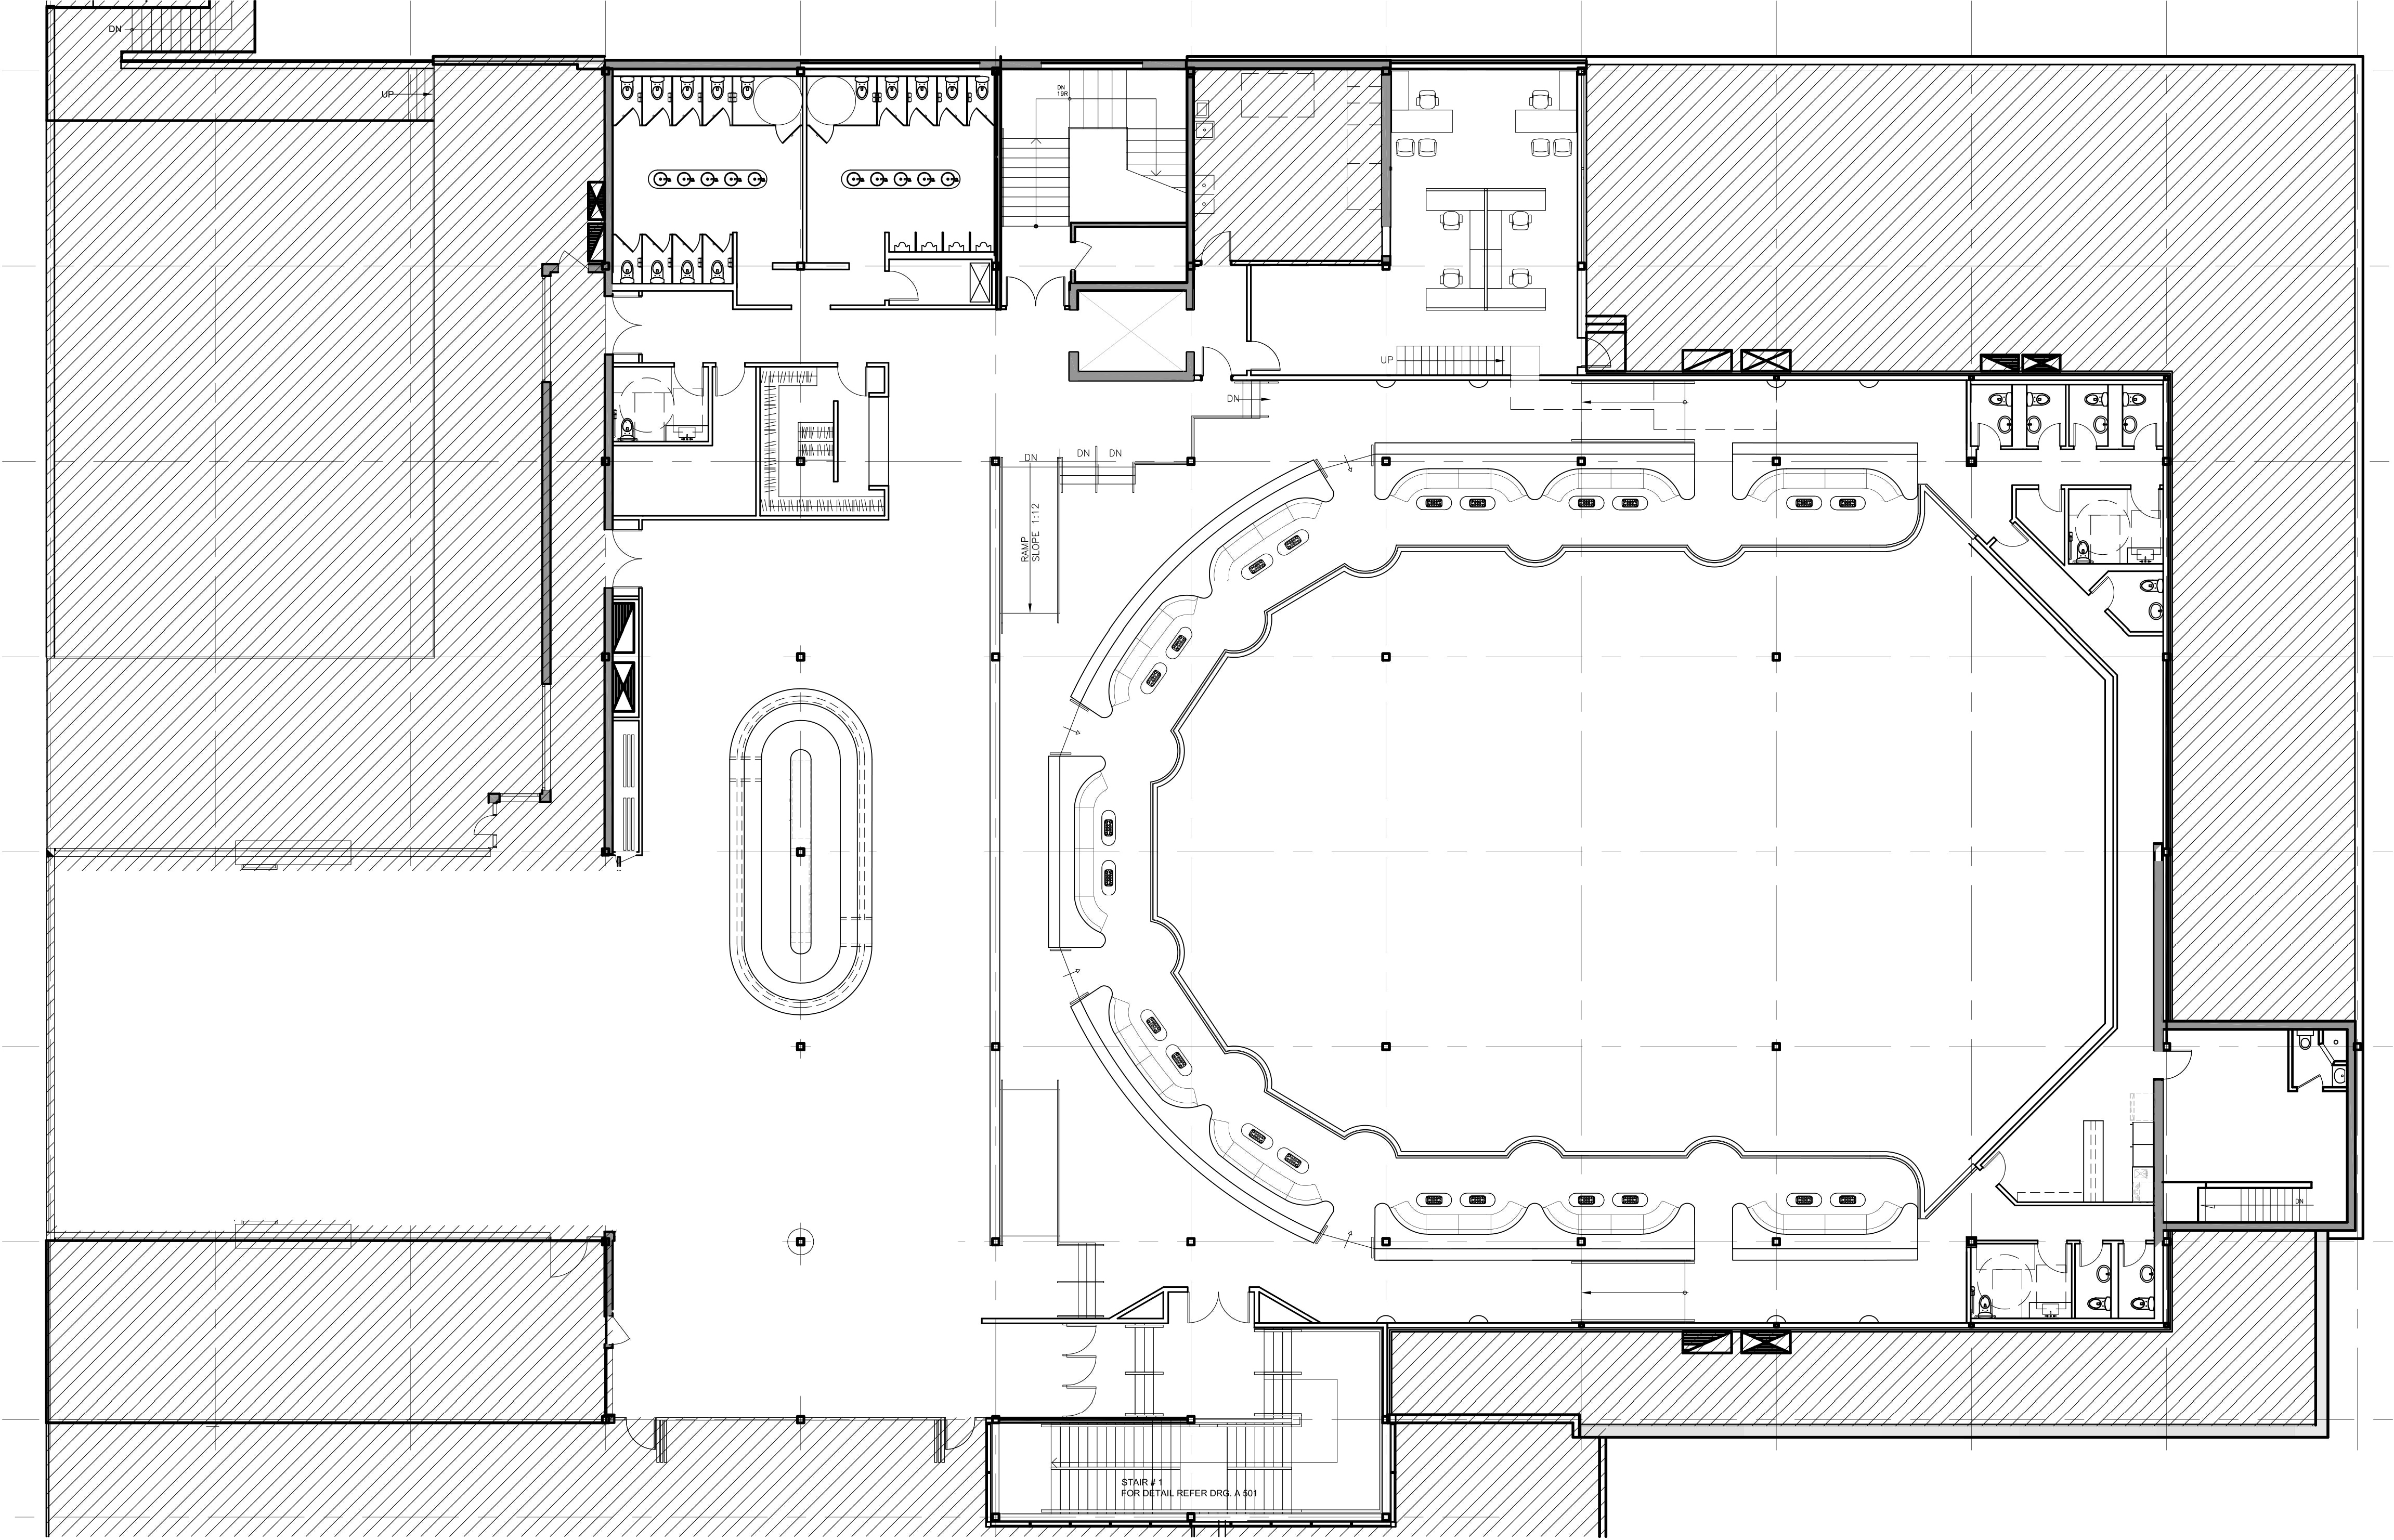 rebel select venue floor plan solarium